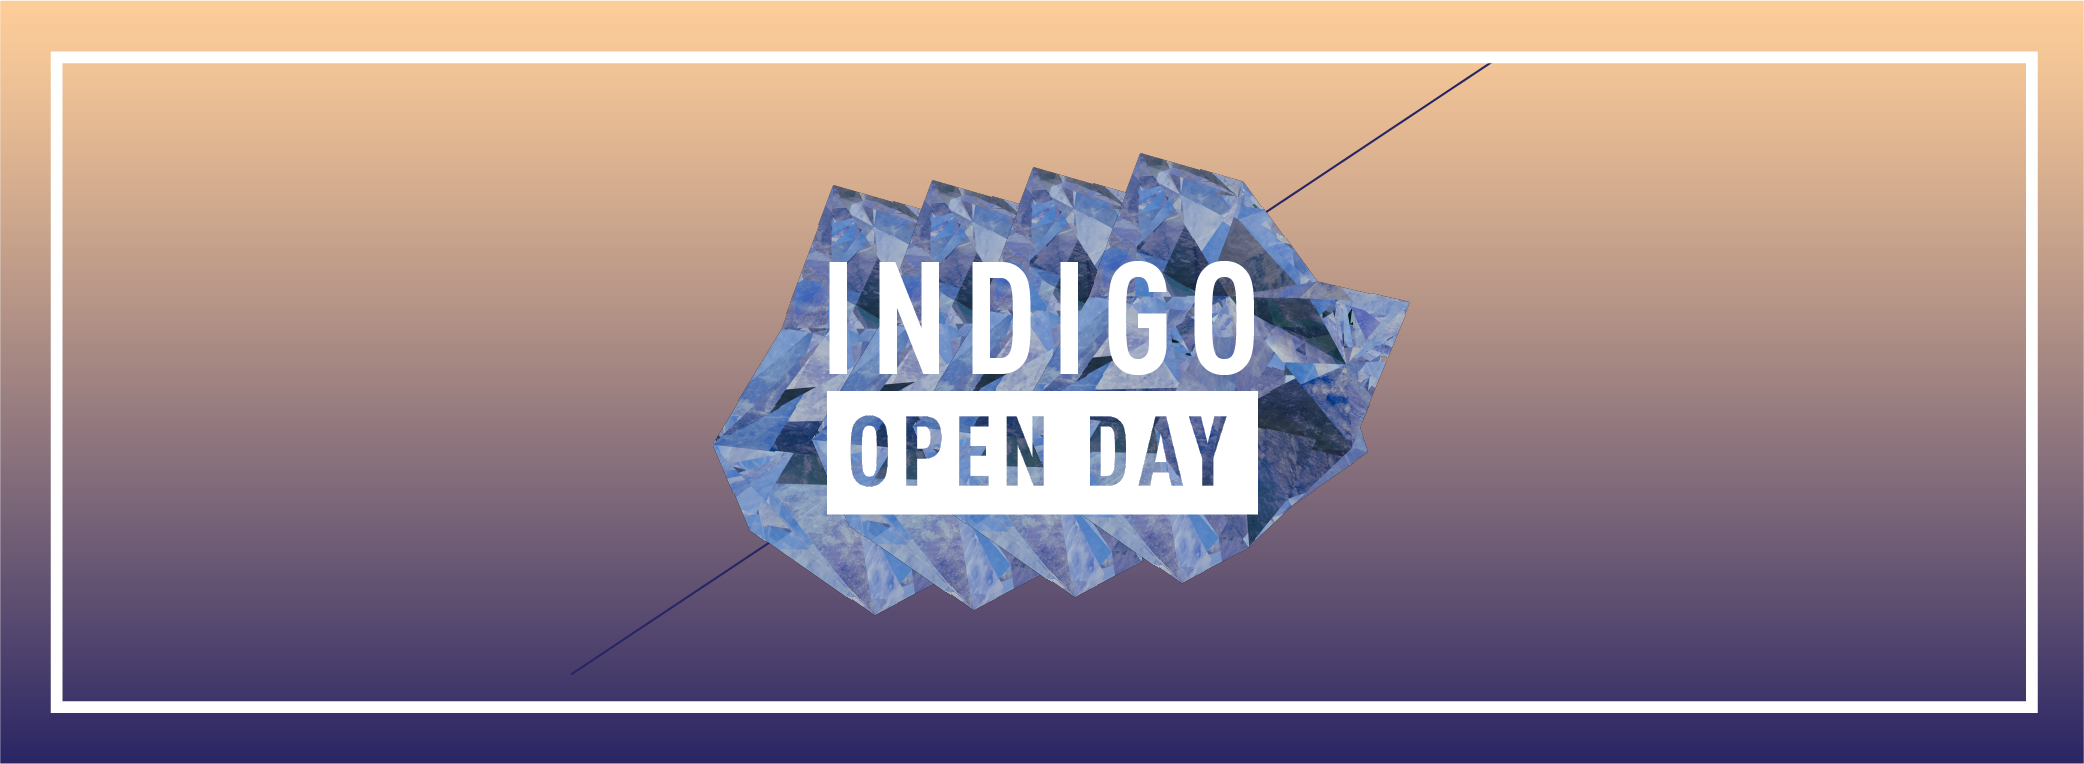 INDIGO OPEN DAY_Webpage Header